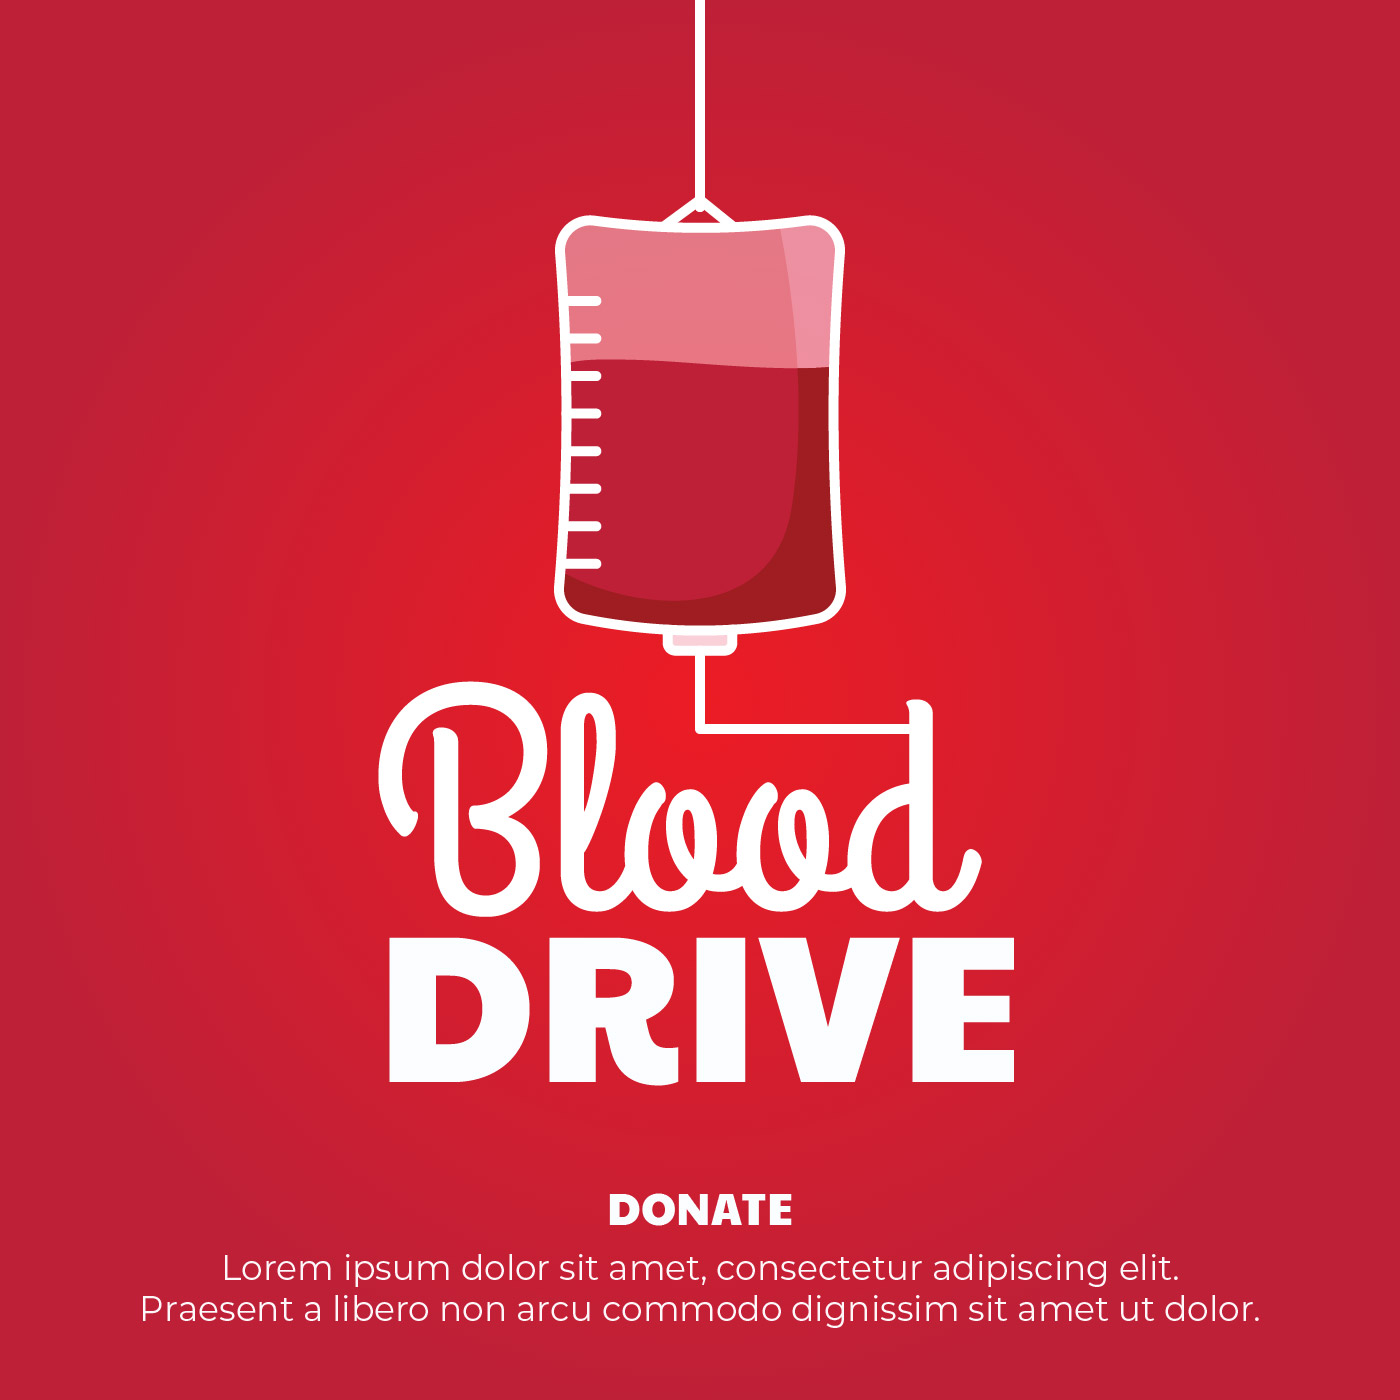 Blood Drive Poster - Download Free Vectors, Clipart ...